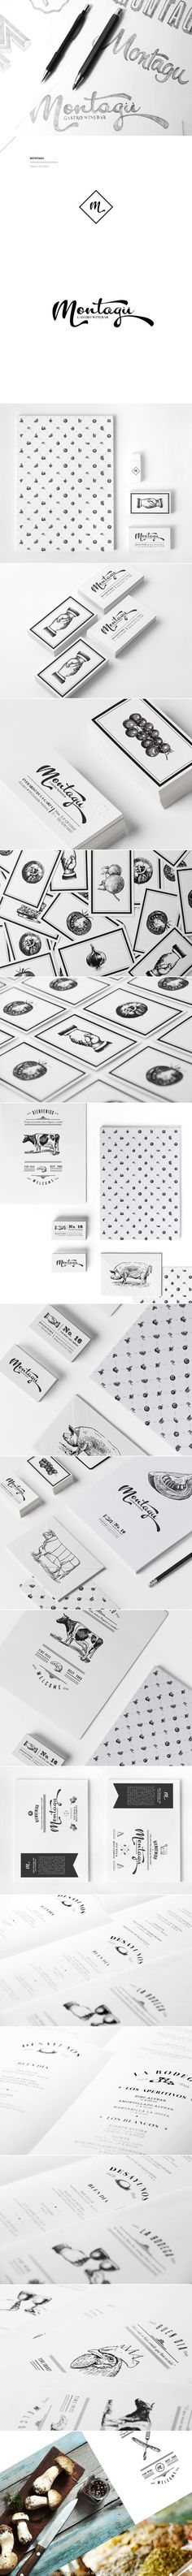 Beautiful Branding for Spanish-Mexican Restaurant Montagu: